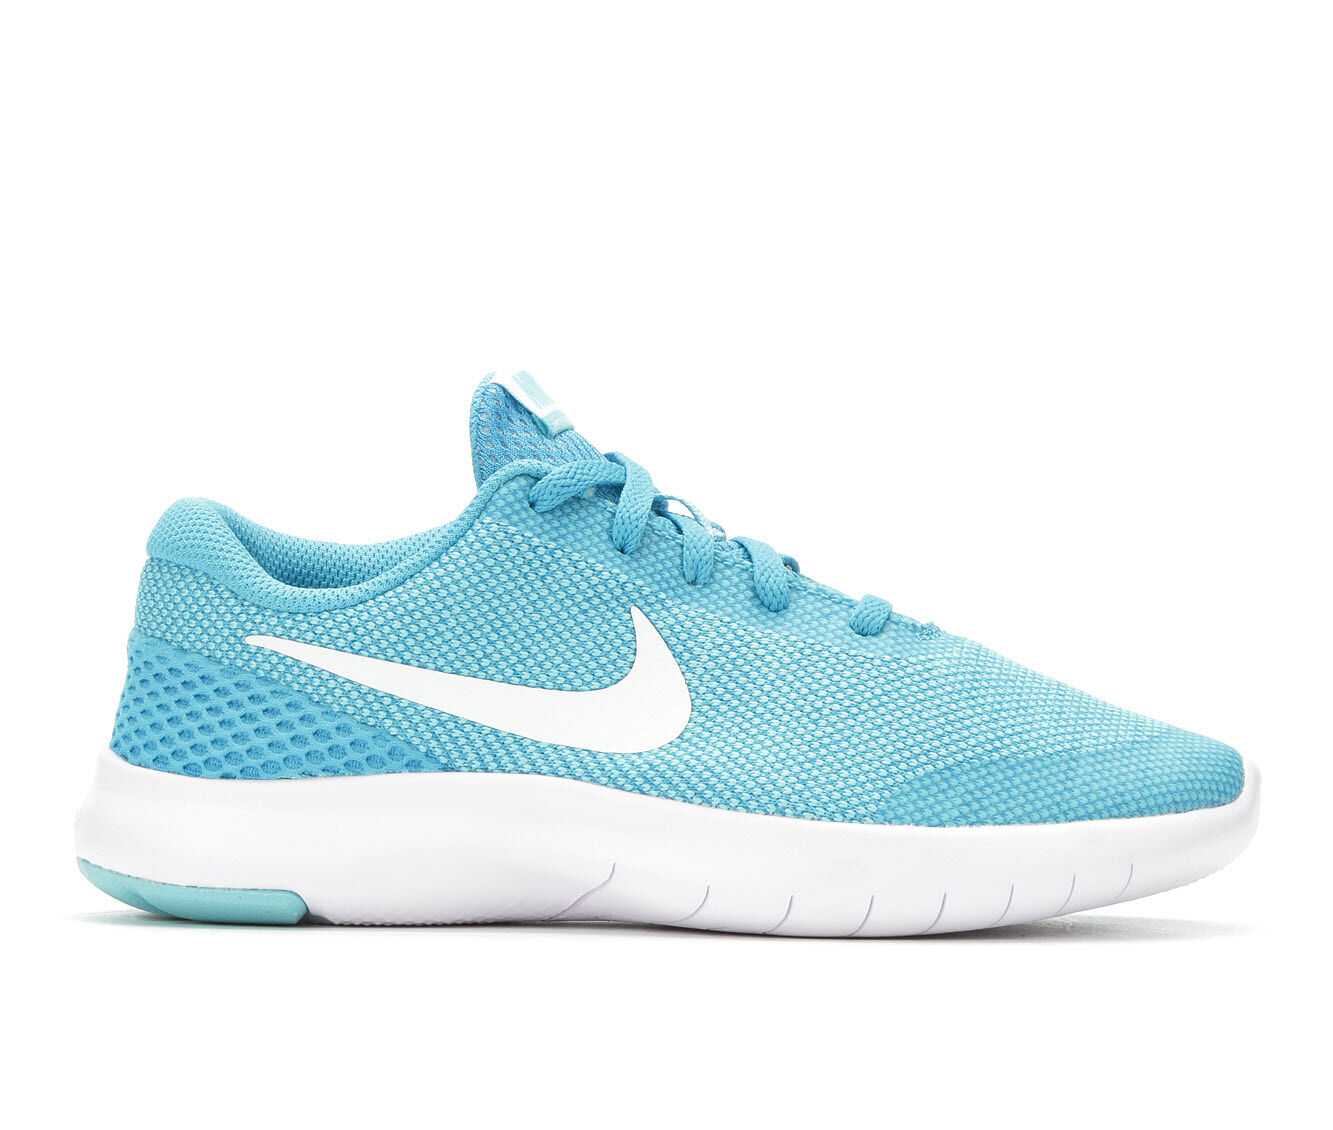 Images Girls Nike Flex Experience RN 7 Girls 357 Running Shoes